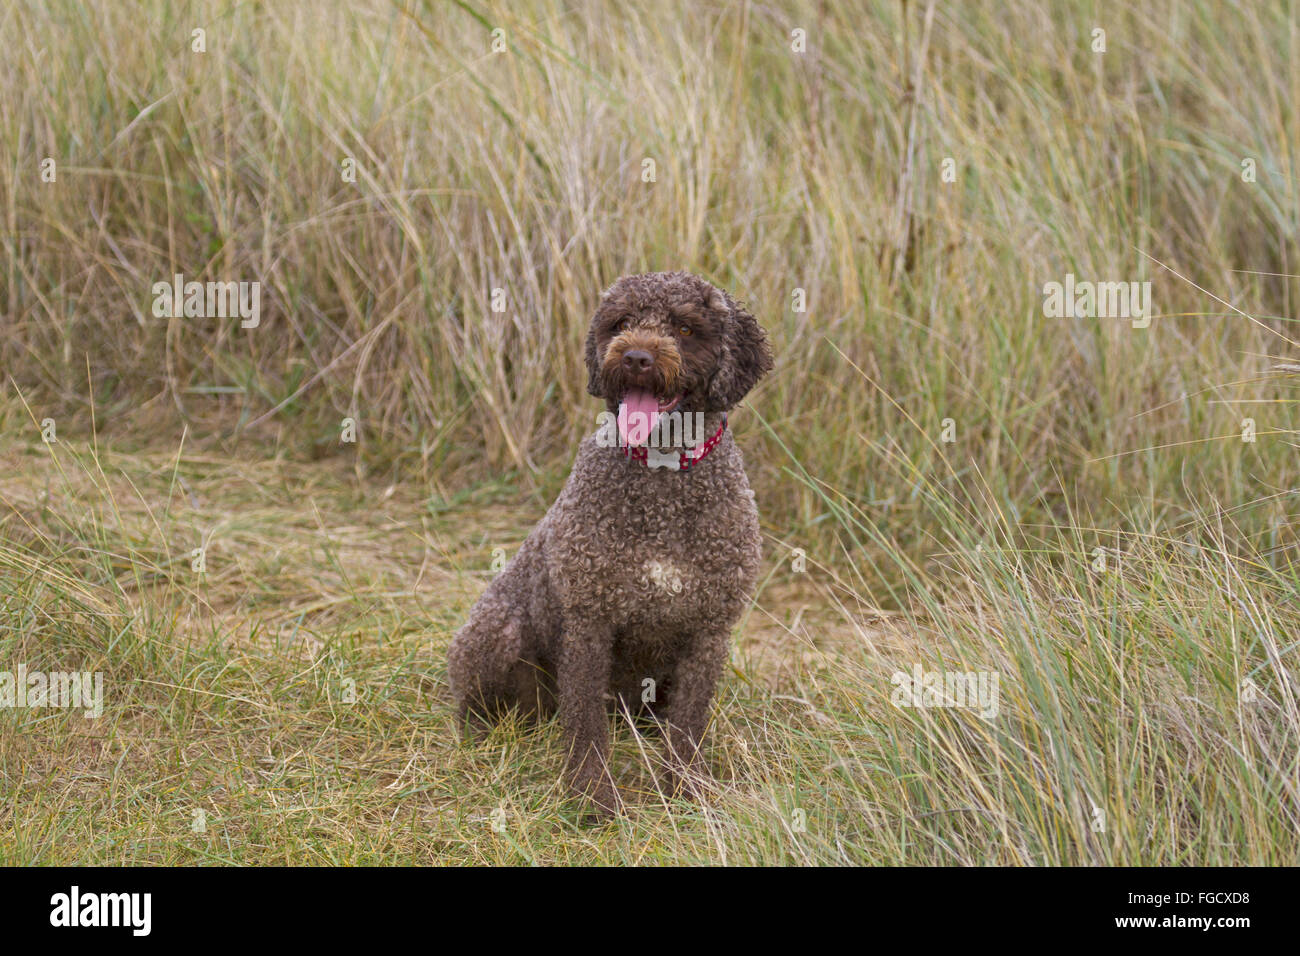 Domestic Dog, Perro de Agua Espanol, adult, sitting in sand dunes, panting, Norfolk, England, October - Stock Image